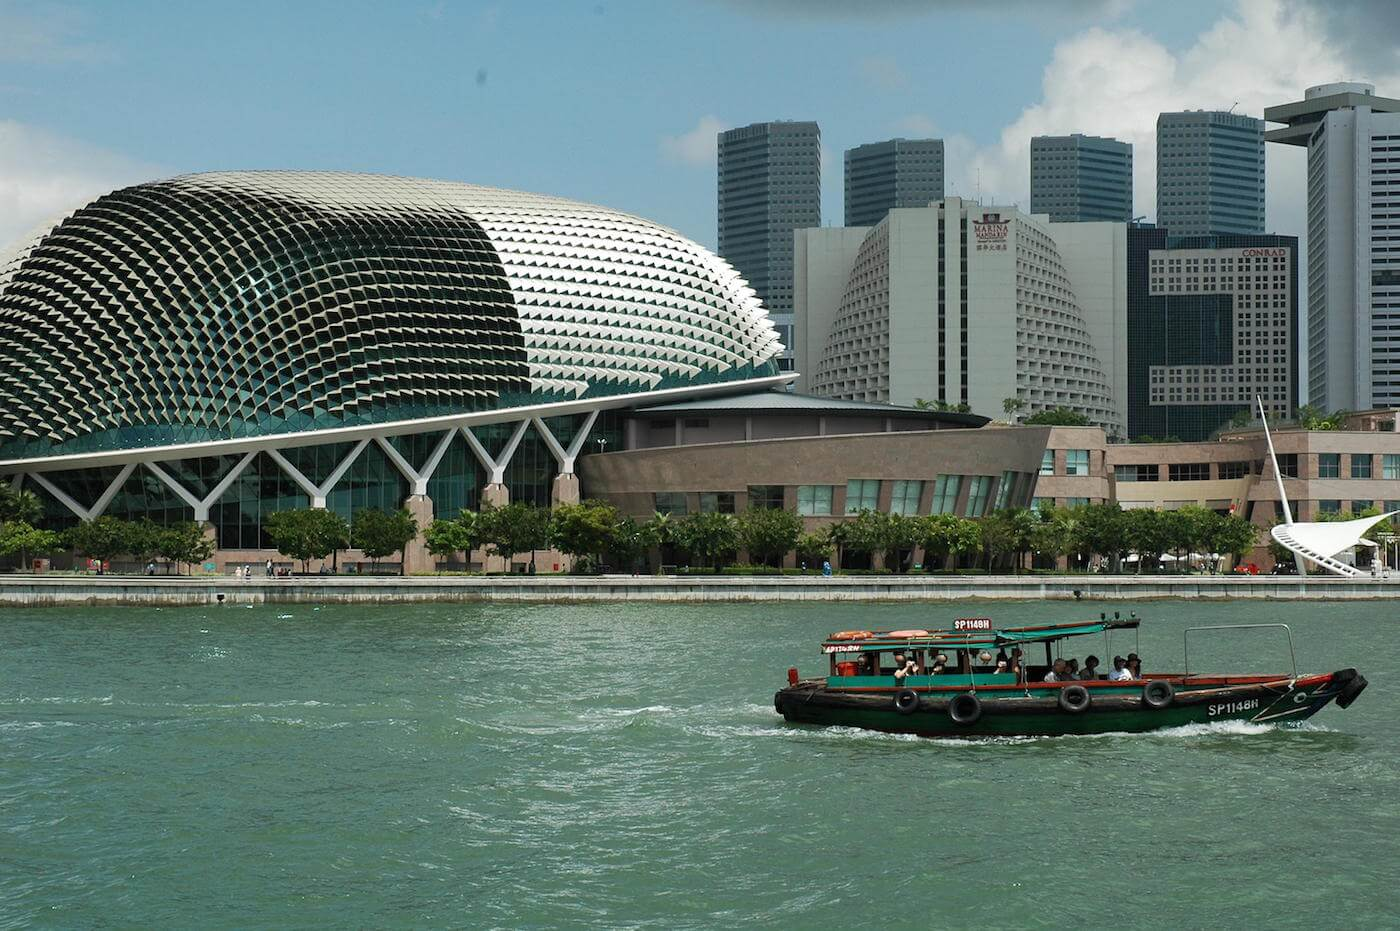 The Singapore River Cruise has some of the best sights of Marina Bay (pictured: Esplanade) Source: Jpatoka